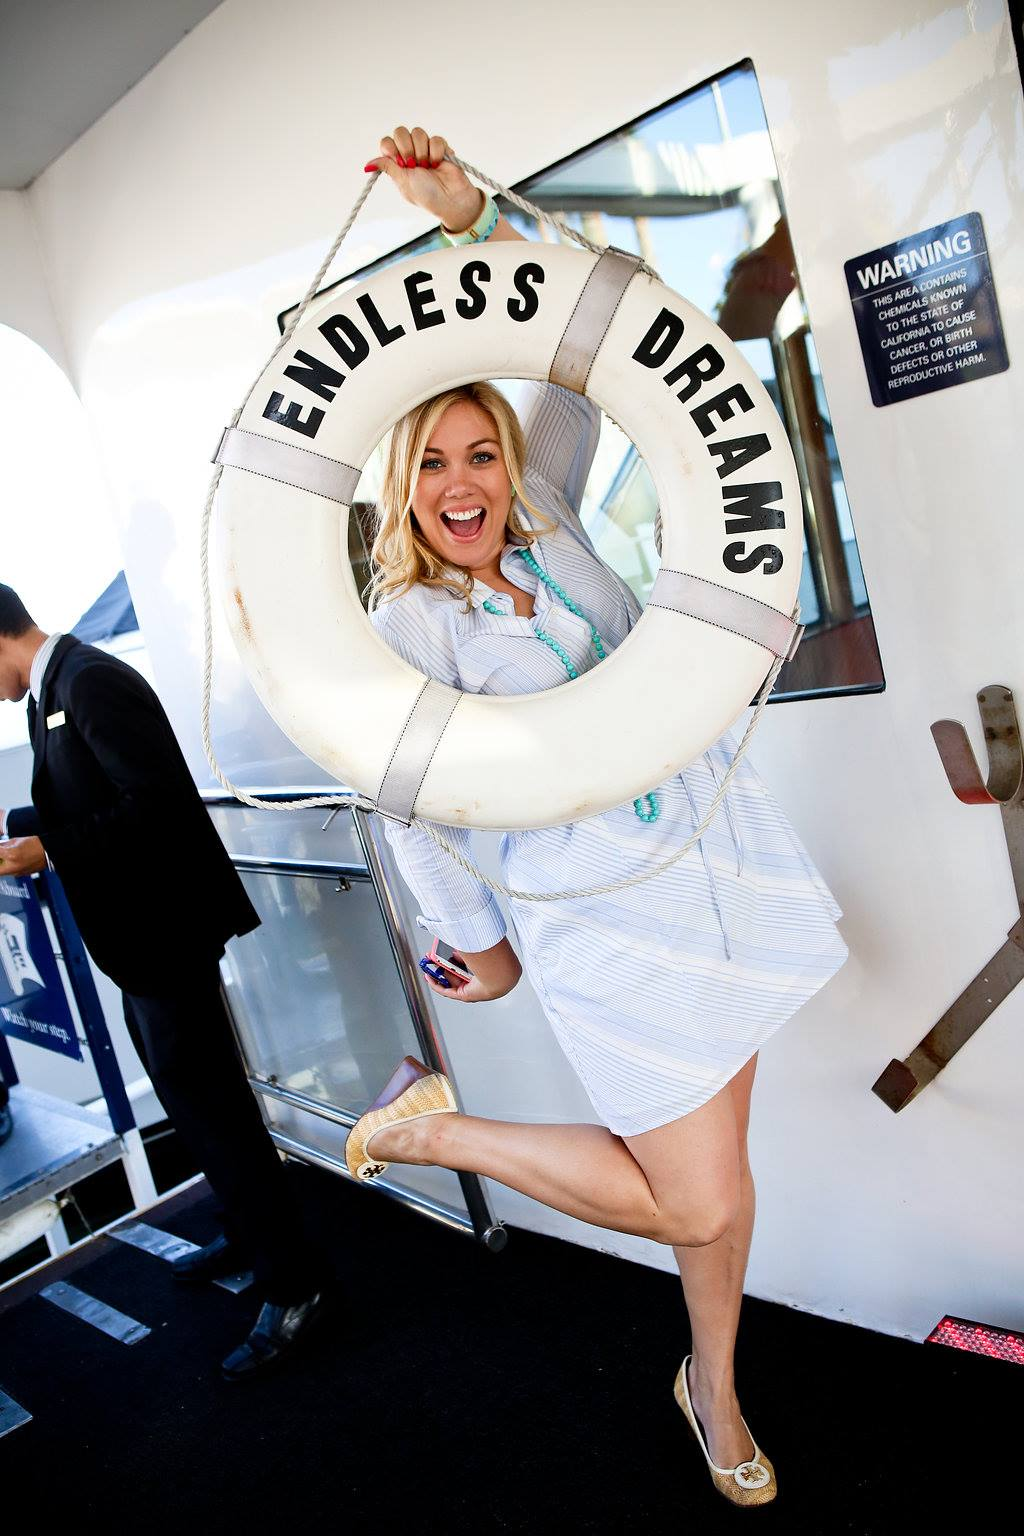 WIPA's Program's Director Events by Robin — with Robin Ballard at Hornblower Cruises & Events on their Endless Dreams Yacht.